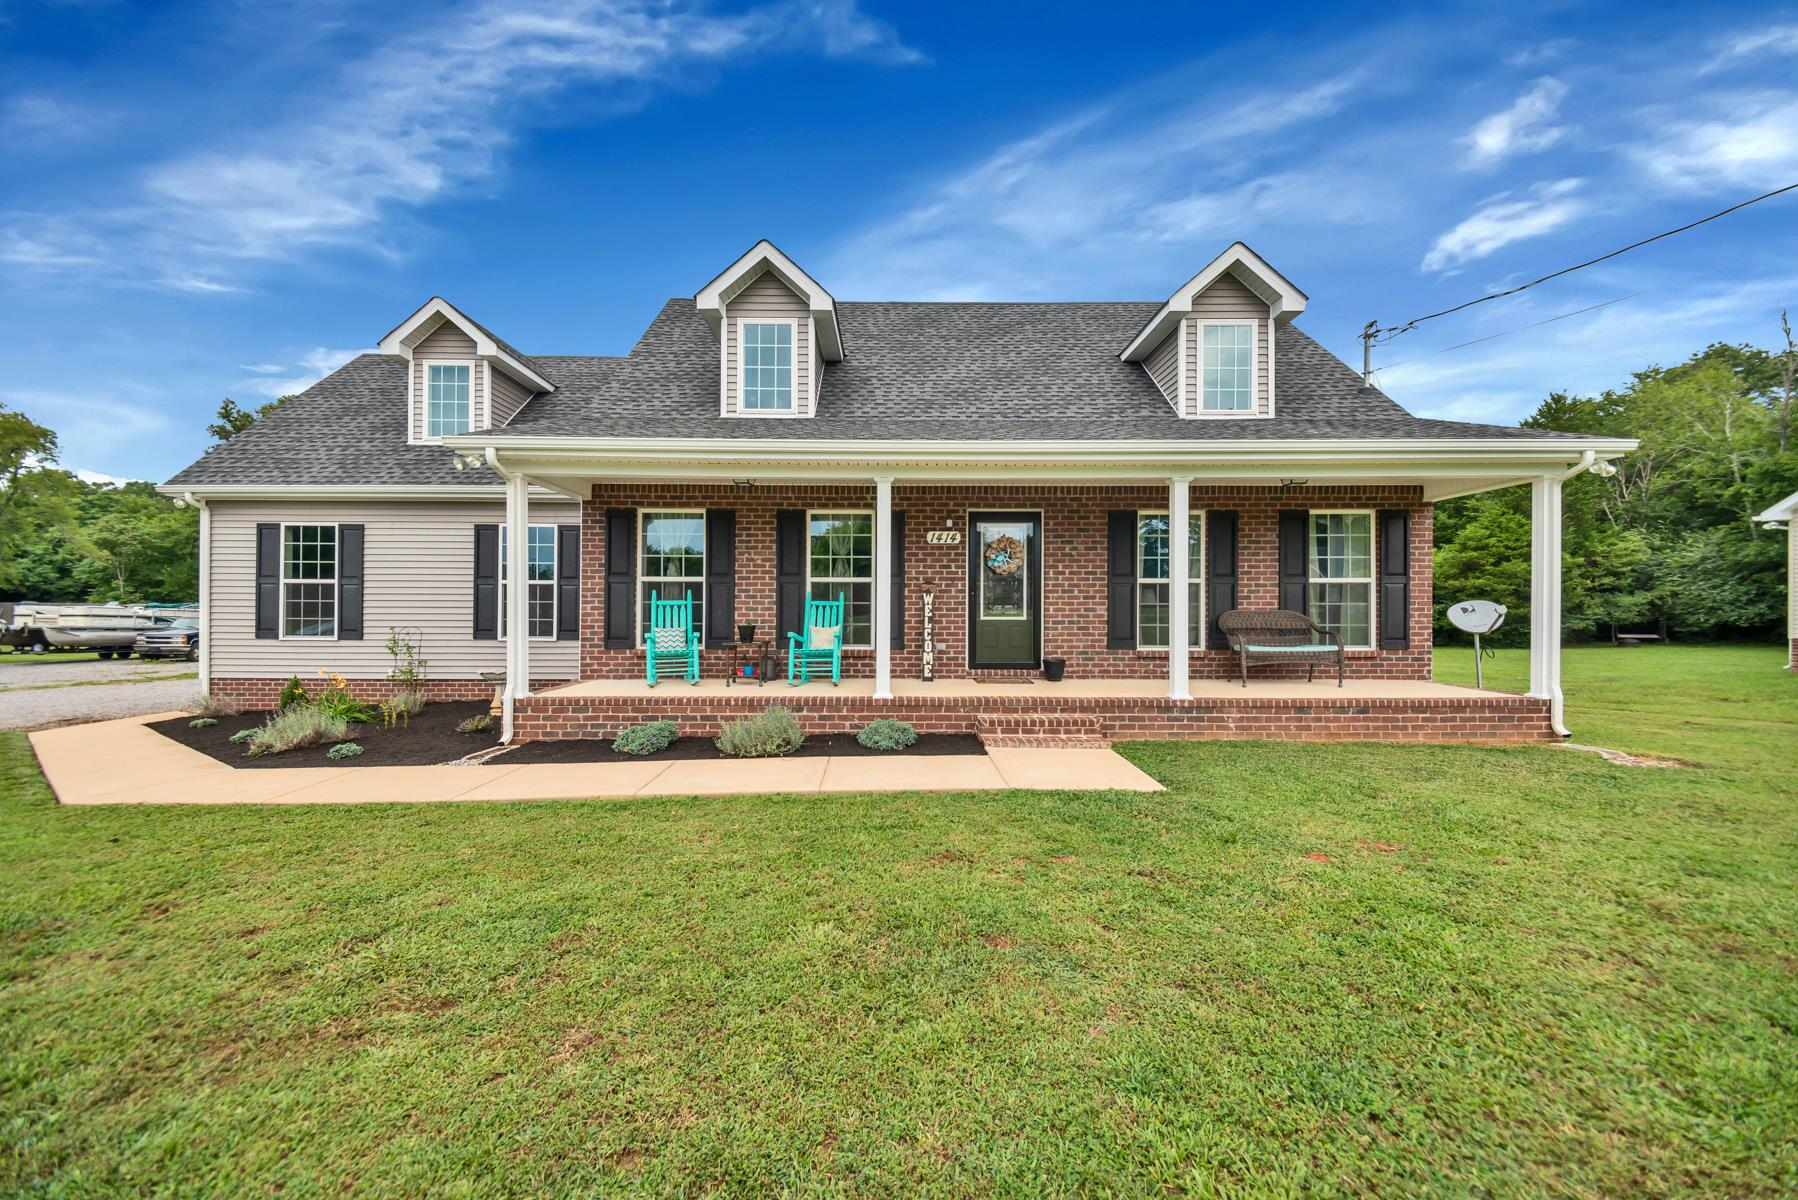 1414 Alyssa Dr, Chapel Hill, TN 37034 - Chapel Hill, TN real estate listing